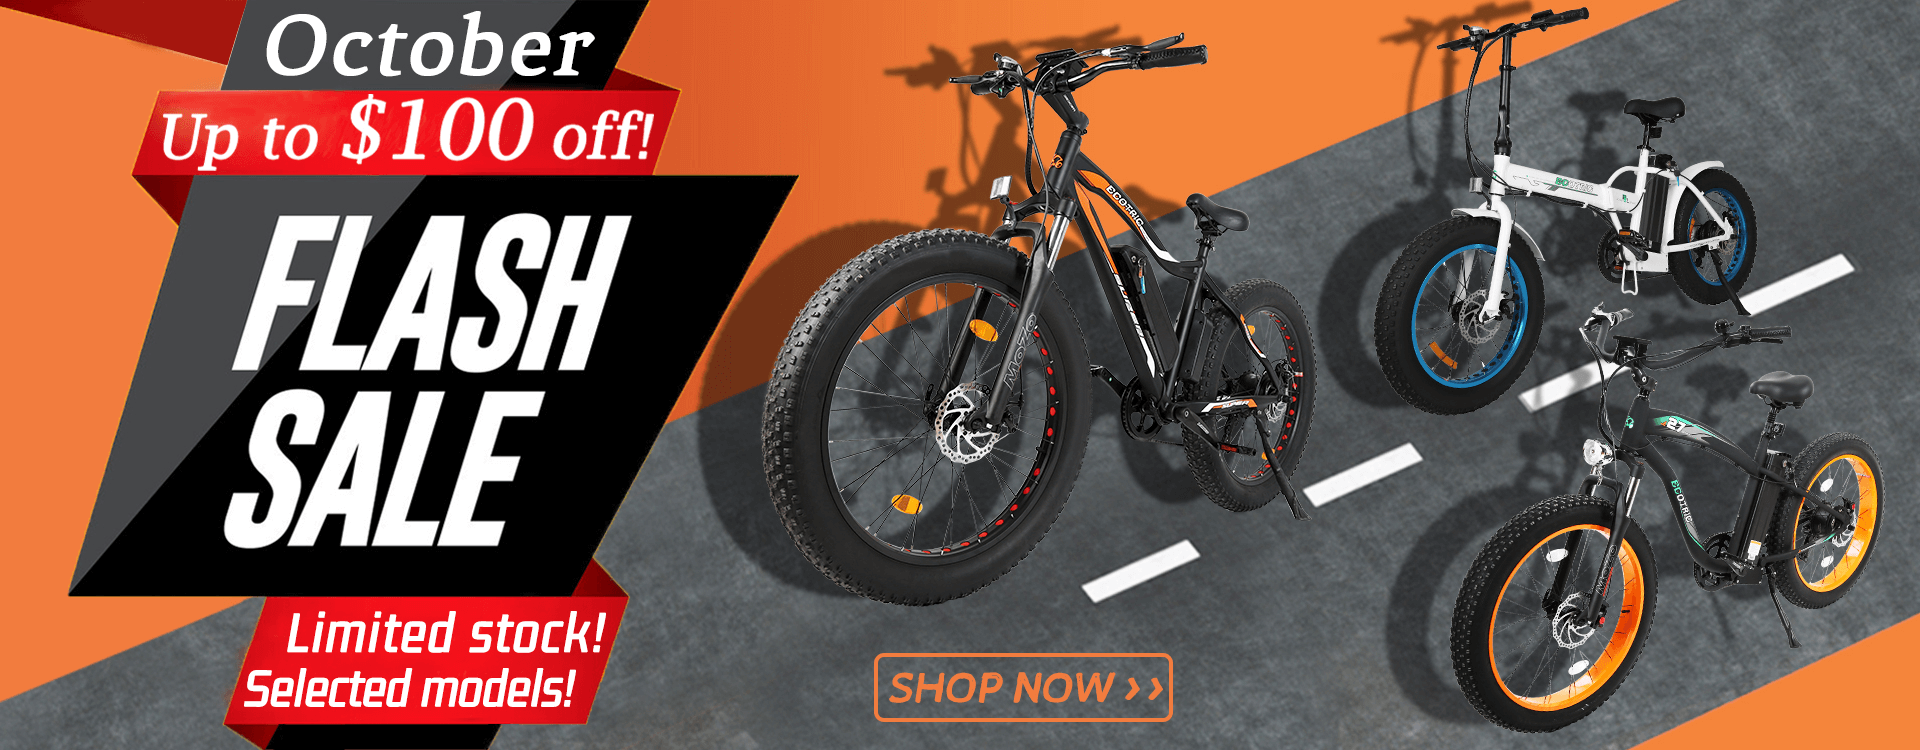 Buy Ecotric bikes, get free accessories!